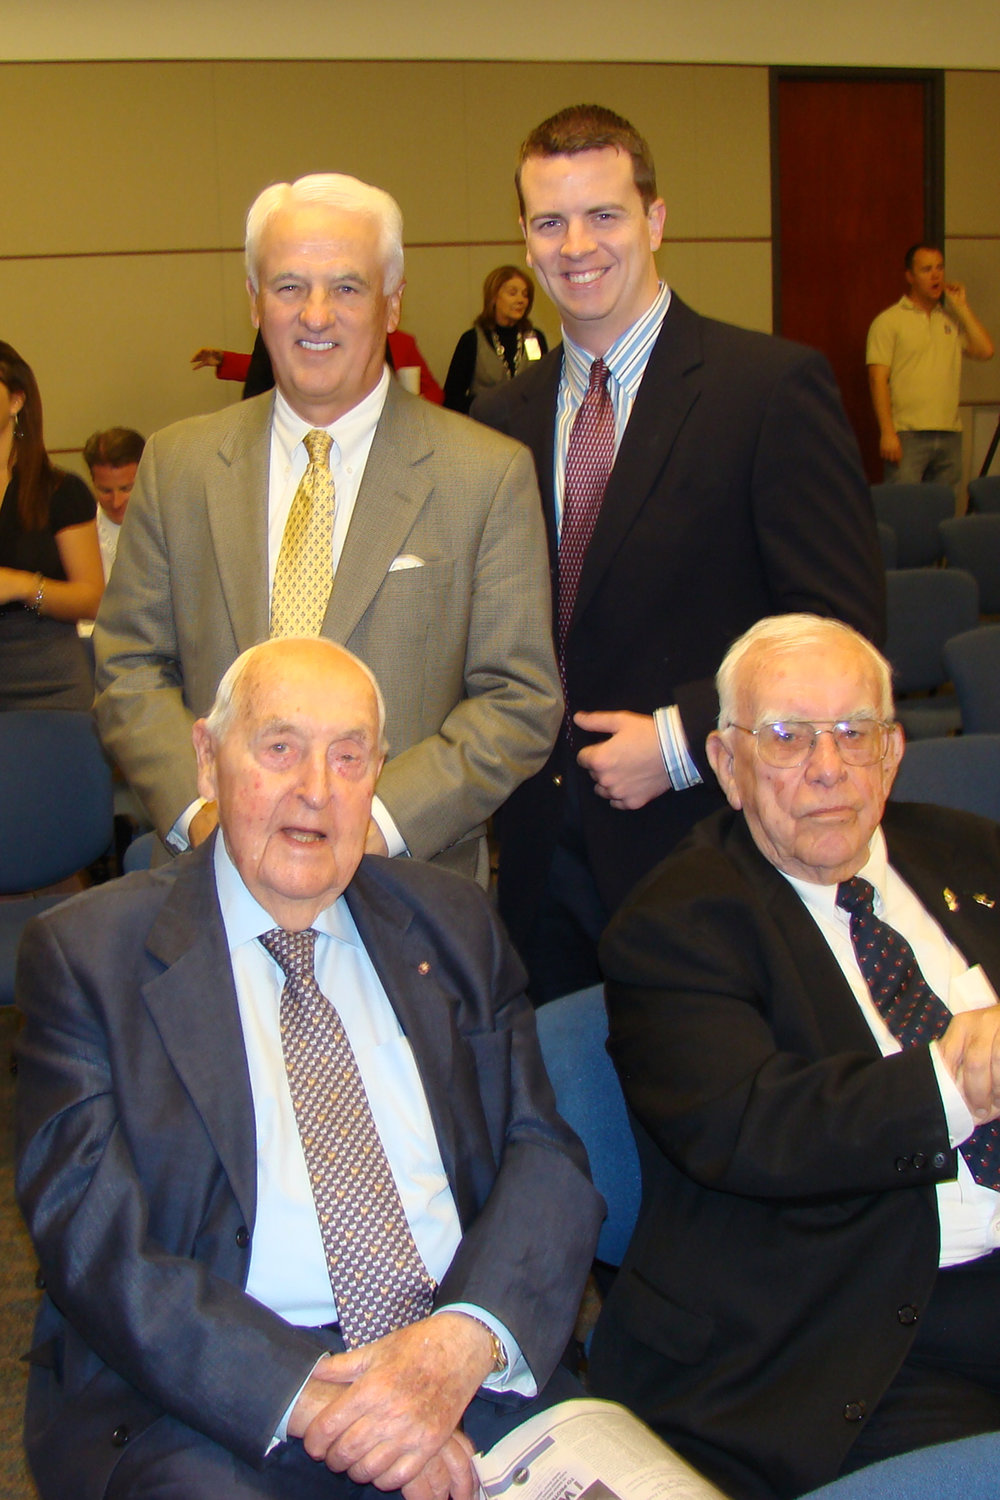 Copy of Sir Lennox Hewitt, Bob Cutler; & John & Jack O'Connor, 30 Oct '08.jpg